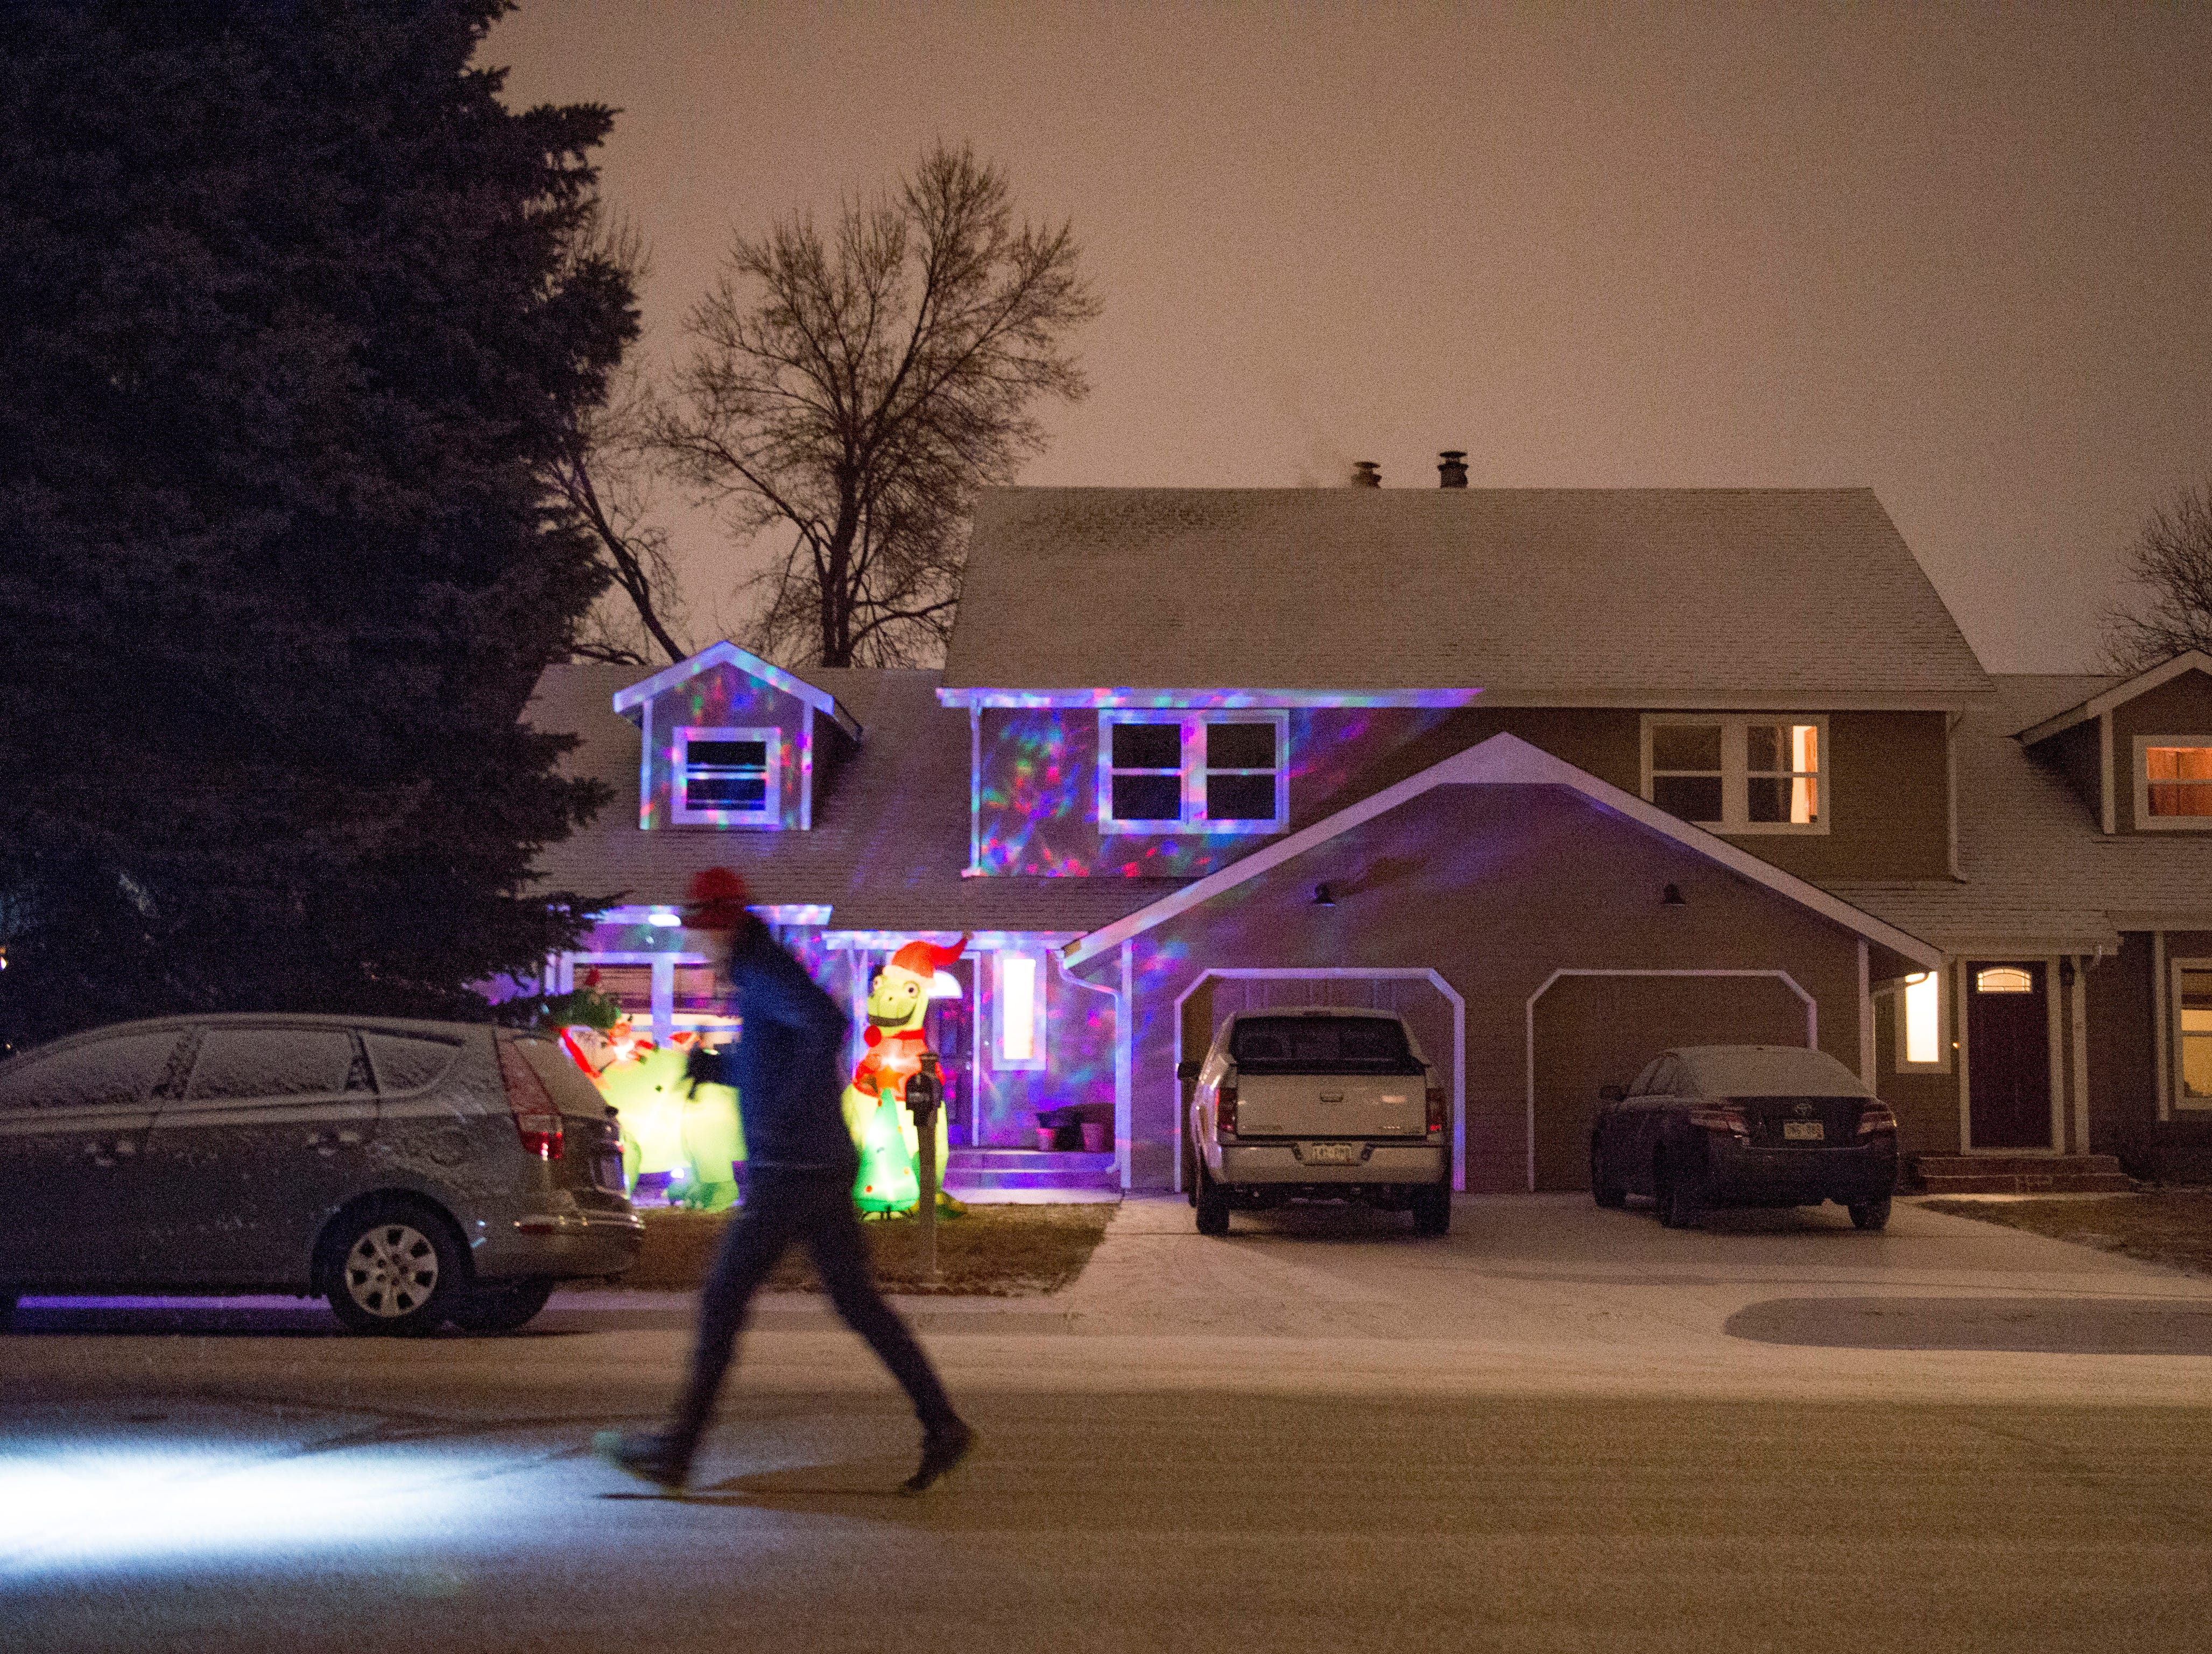 A runner passes a Christmas display in the dark during the Resolution Run 5K at Our Saviour's Lutheran Church on December 31, 2018. People braved single-digit temperatures to ring in the new year with the run.